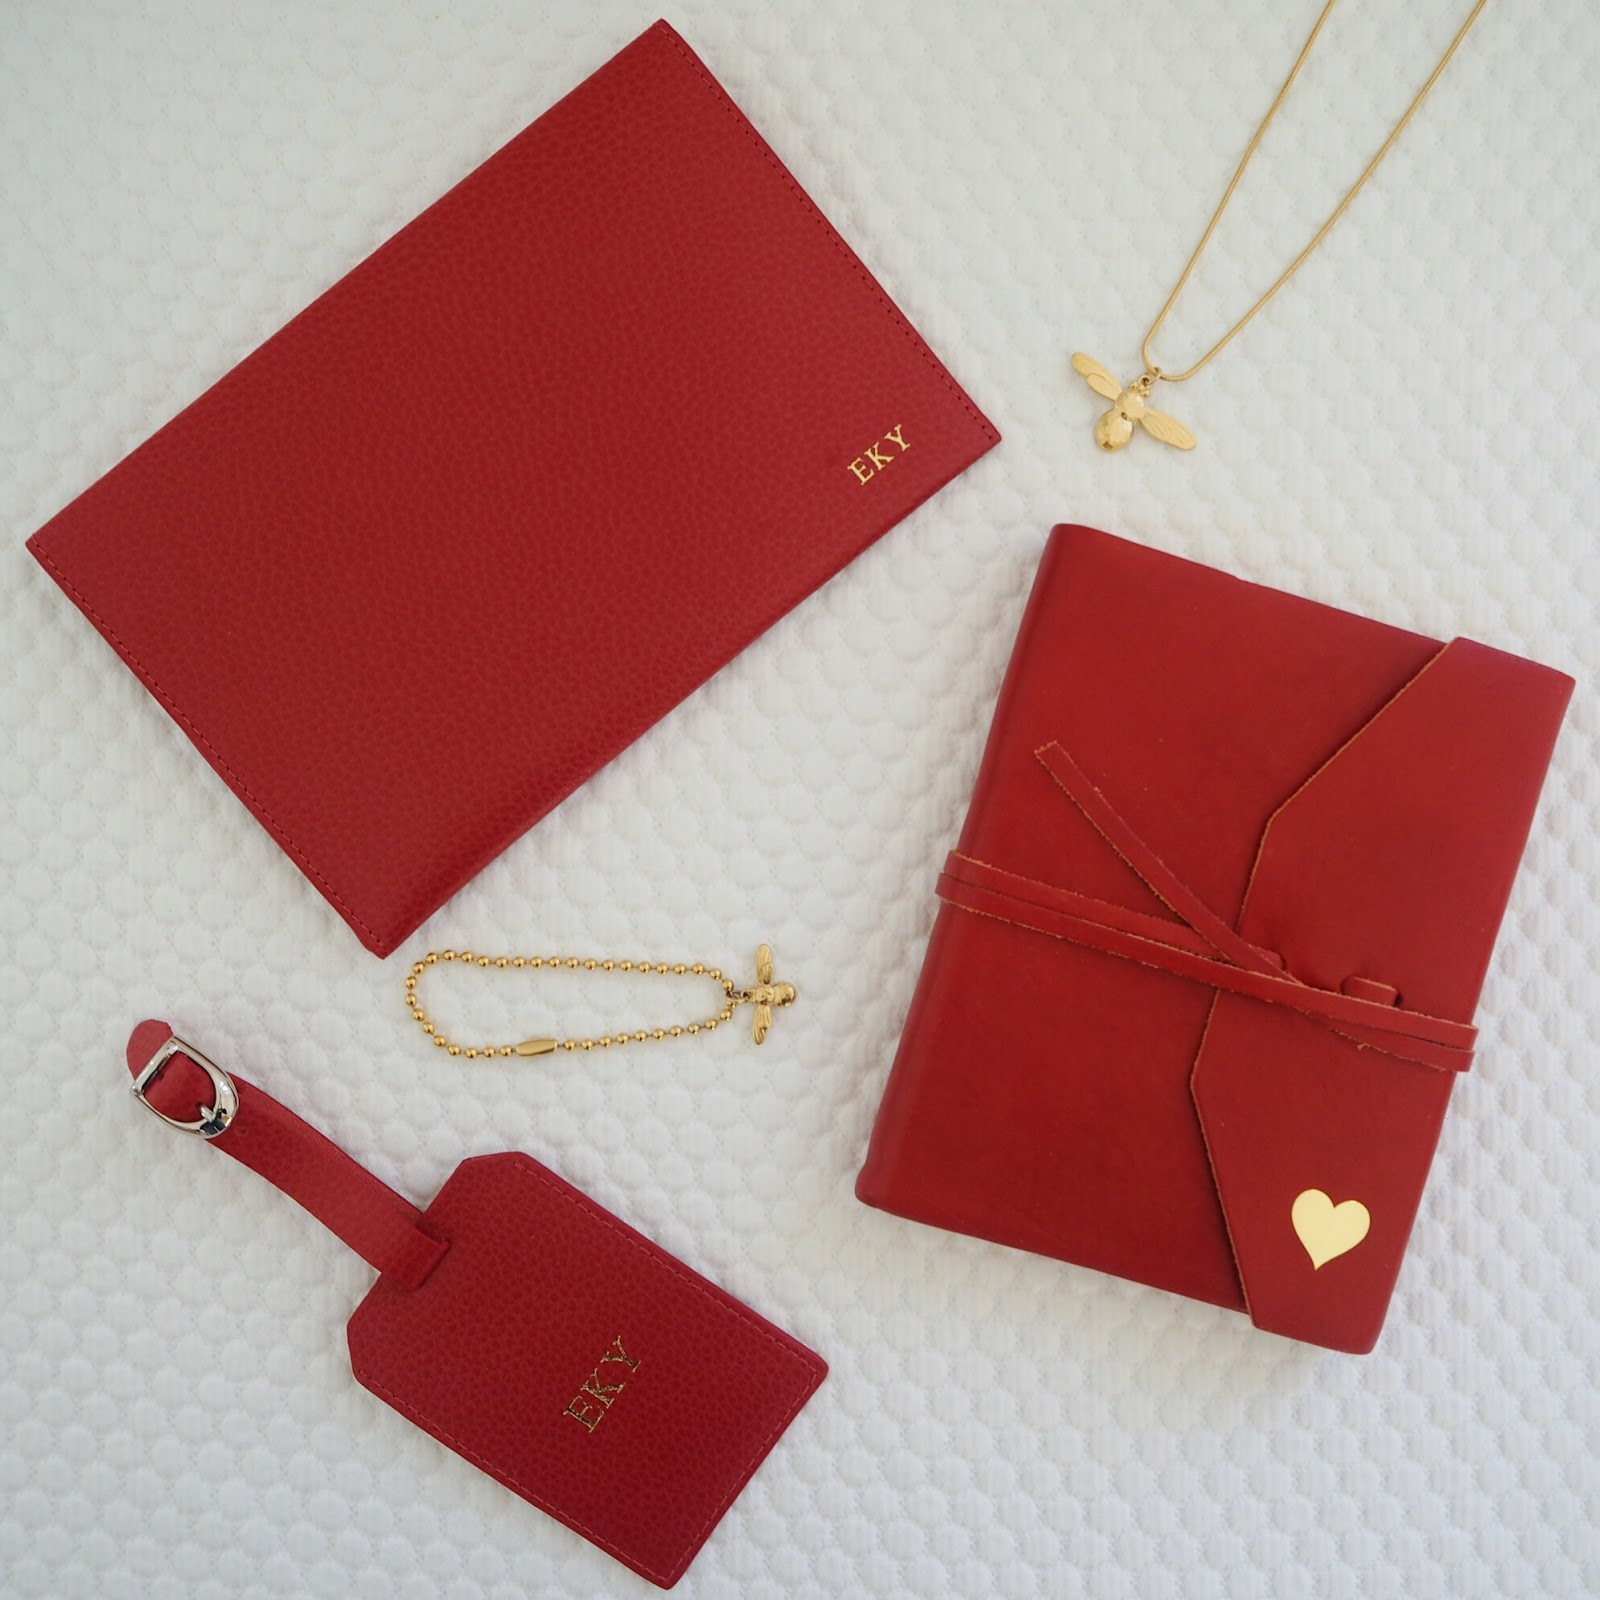 Valentine's gist guide for over 40s, red leather personalised notebook, luggage tag and travel wallet